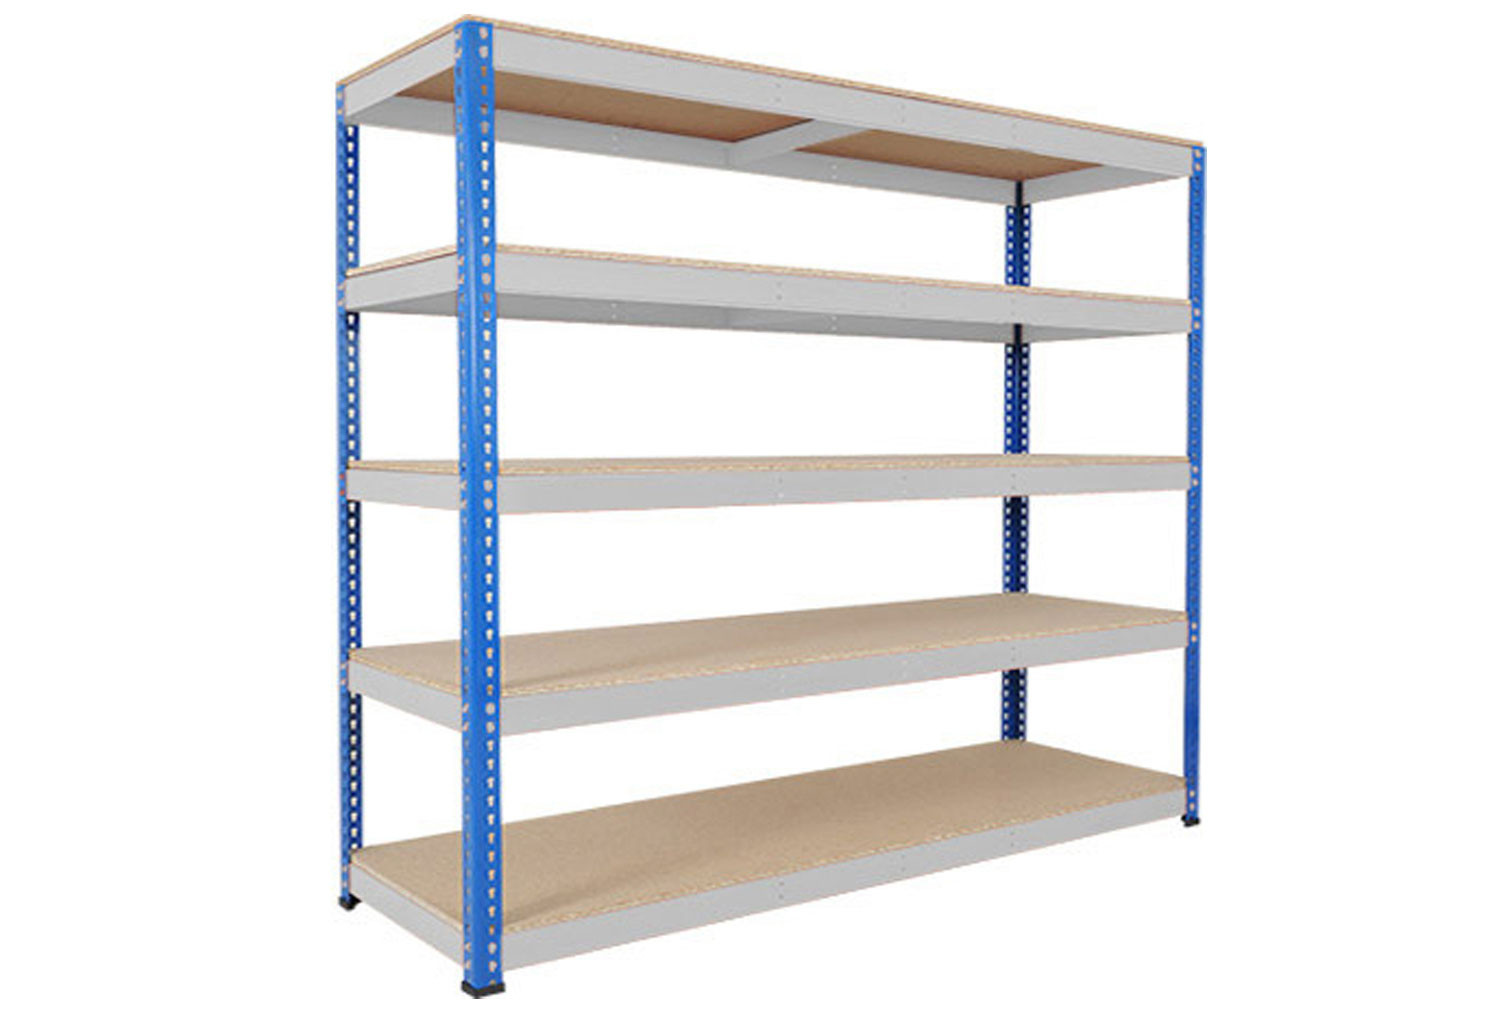 Rapid 1 Heavy Duty Shelving With 5 Chipboard Shelves 2134wx2440h (Blue/Grey)